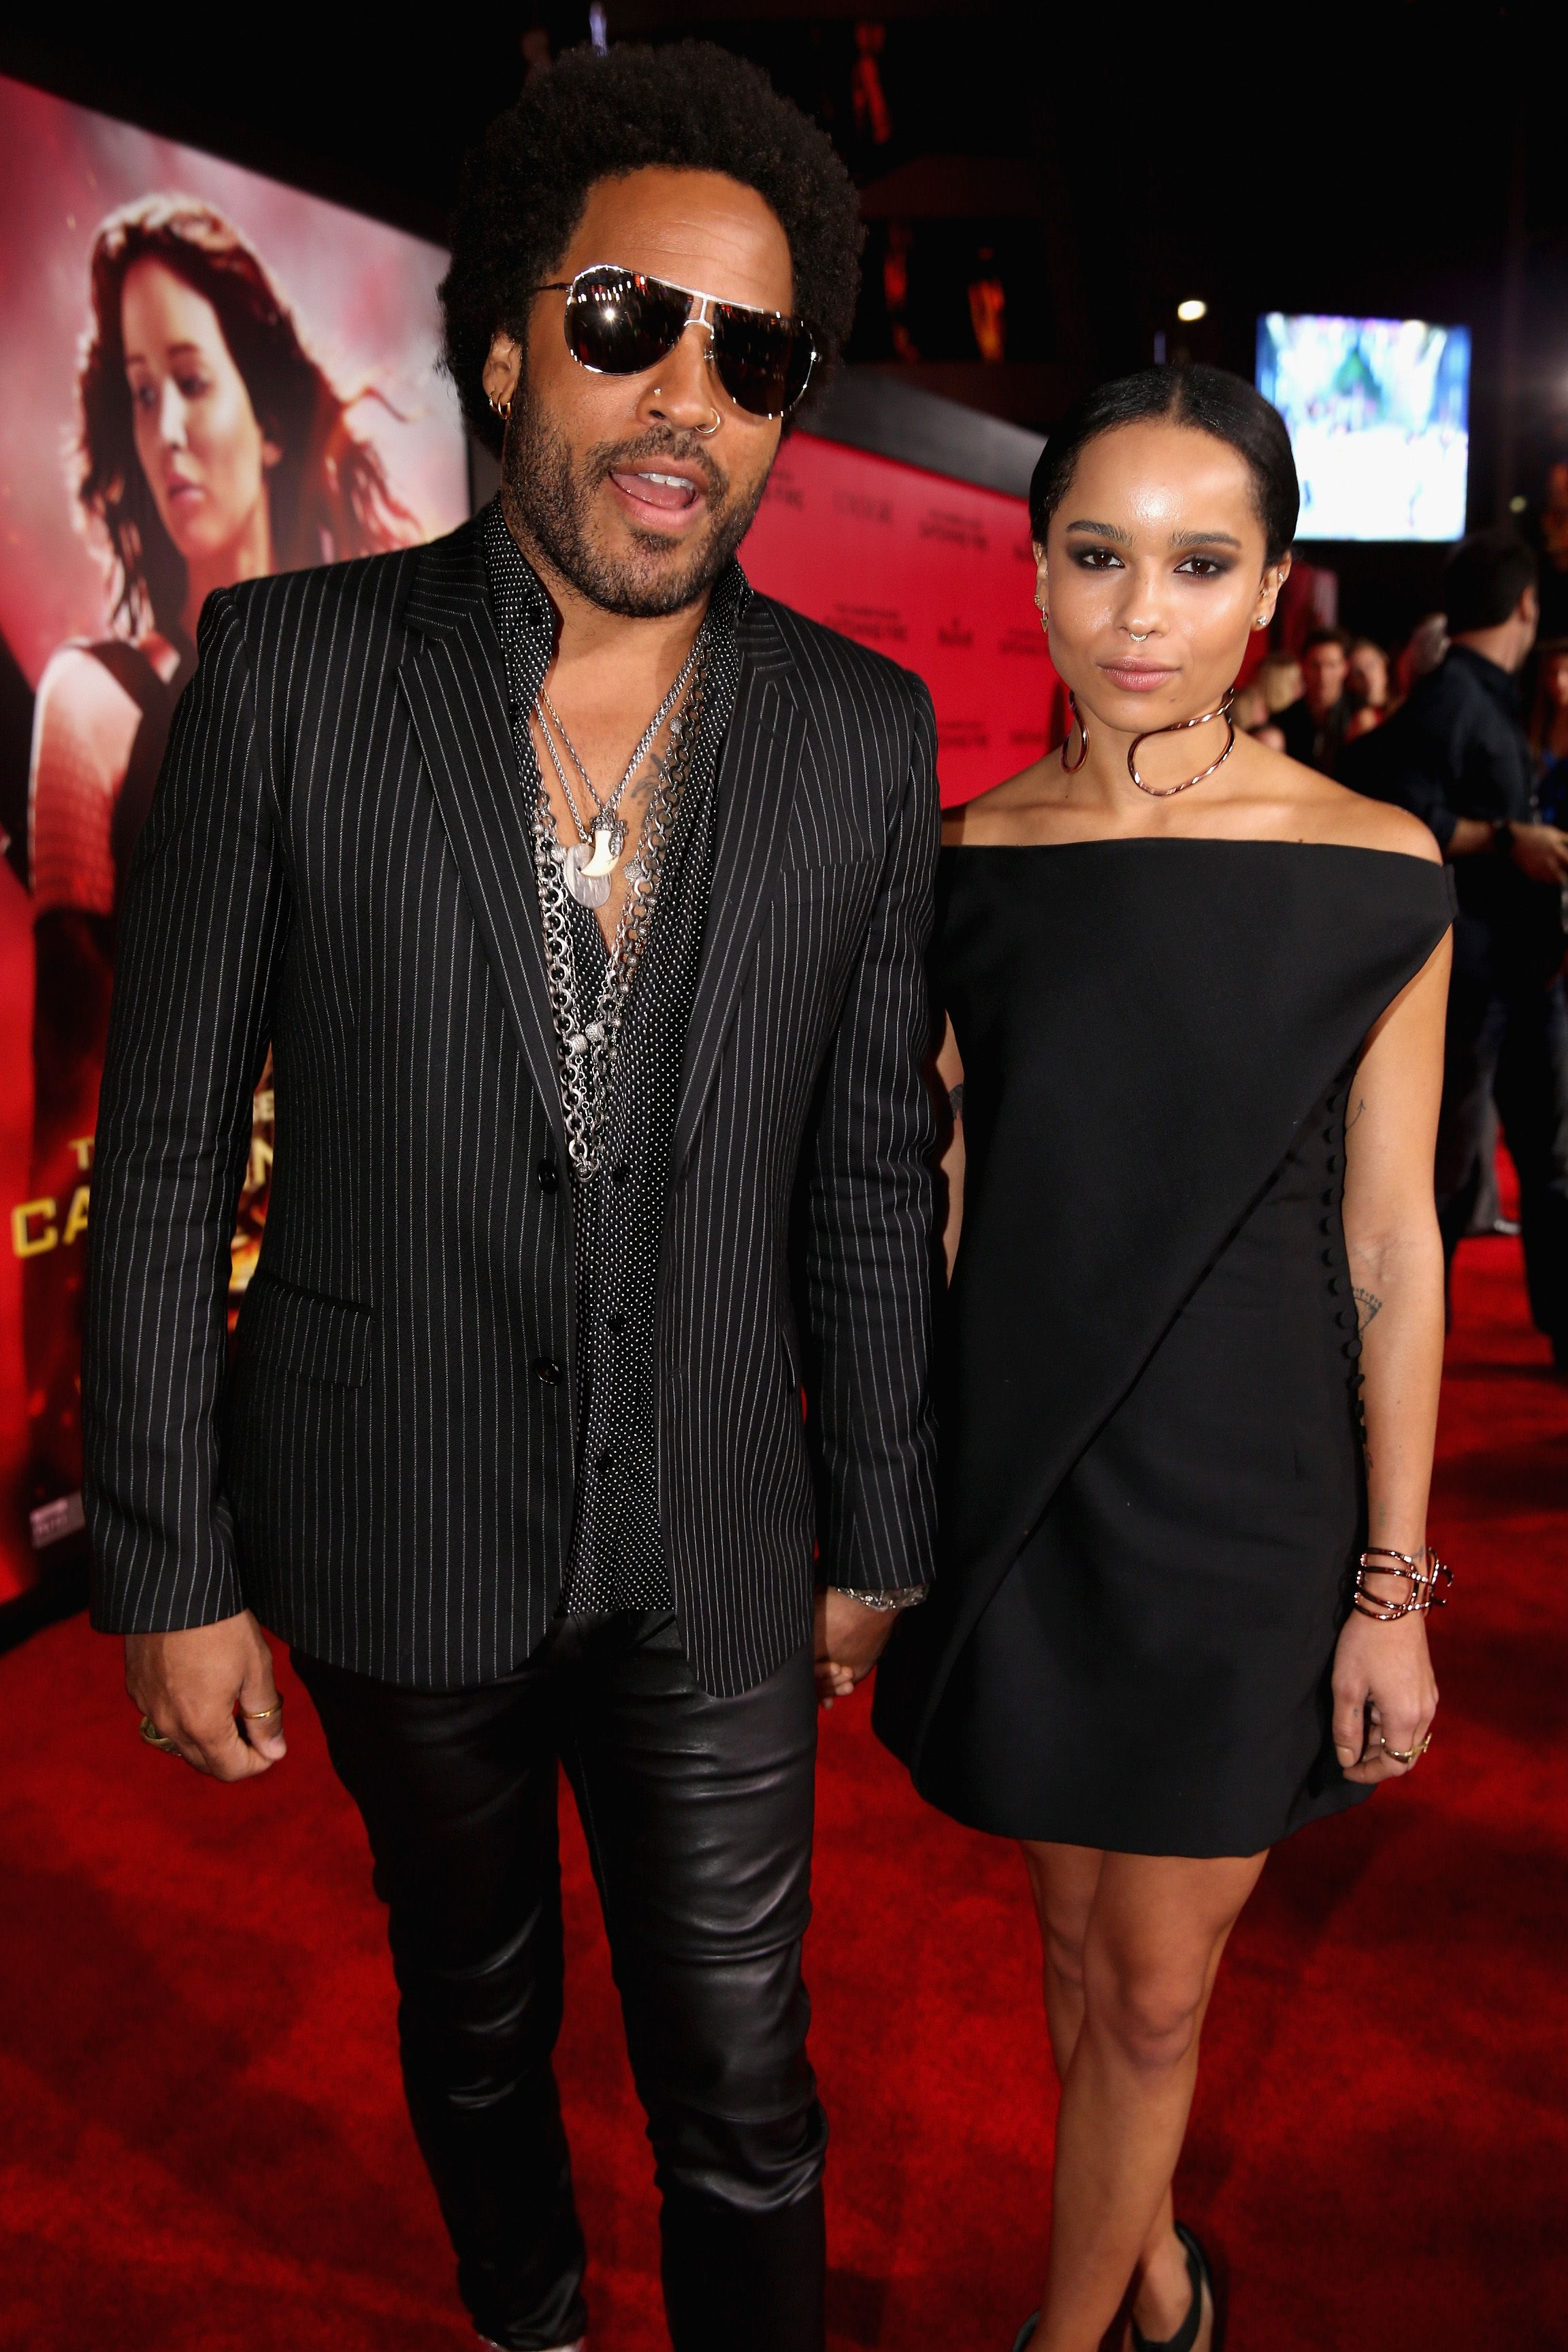 """Lenny Kravitz and daughter Zoe Kravitz at premiere of Lionsgate's """"The Hunger Games: Catching Fire"""" on November 18, 2013 